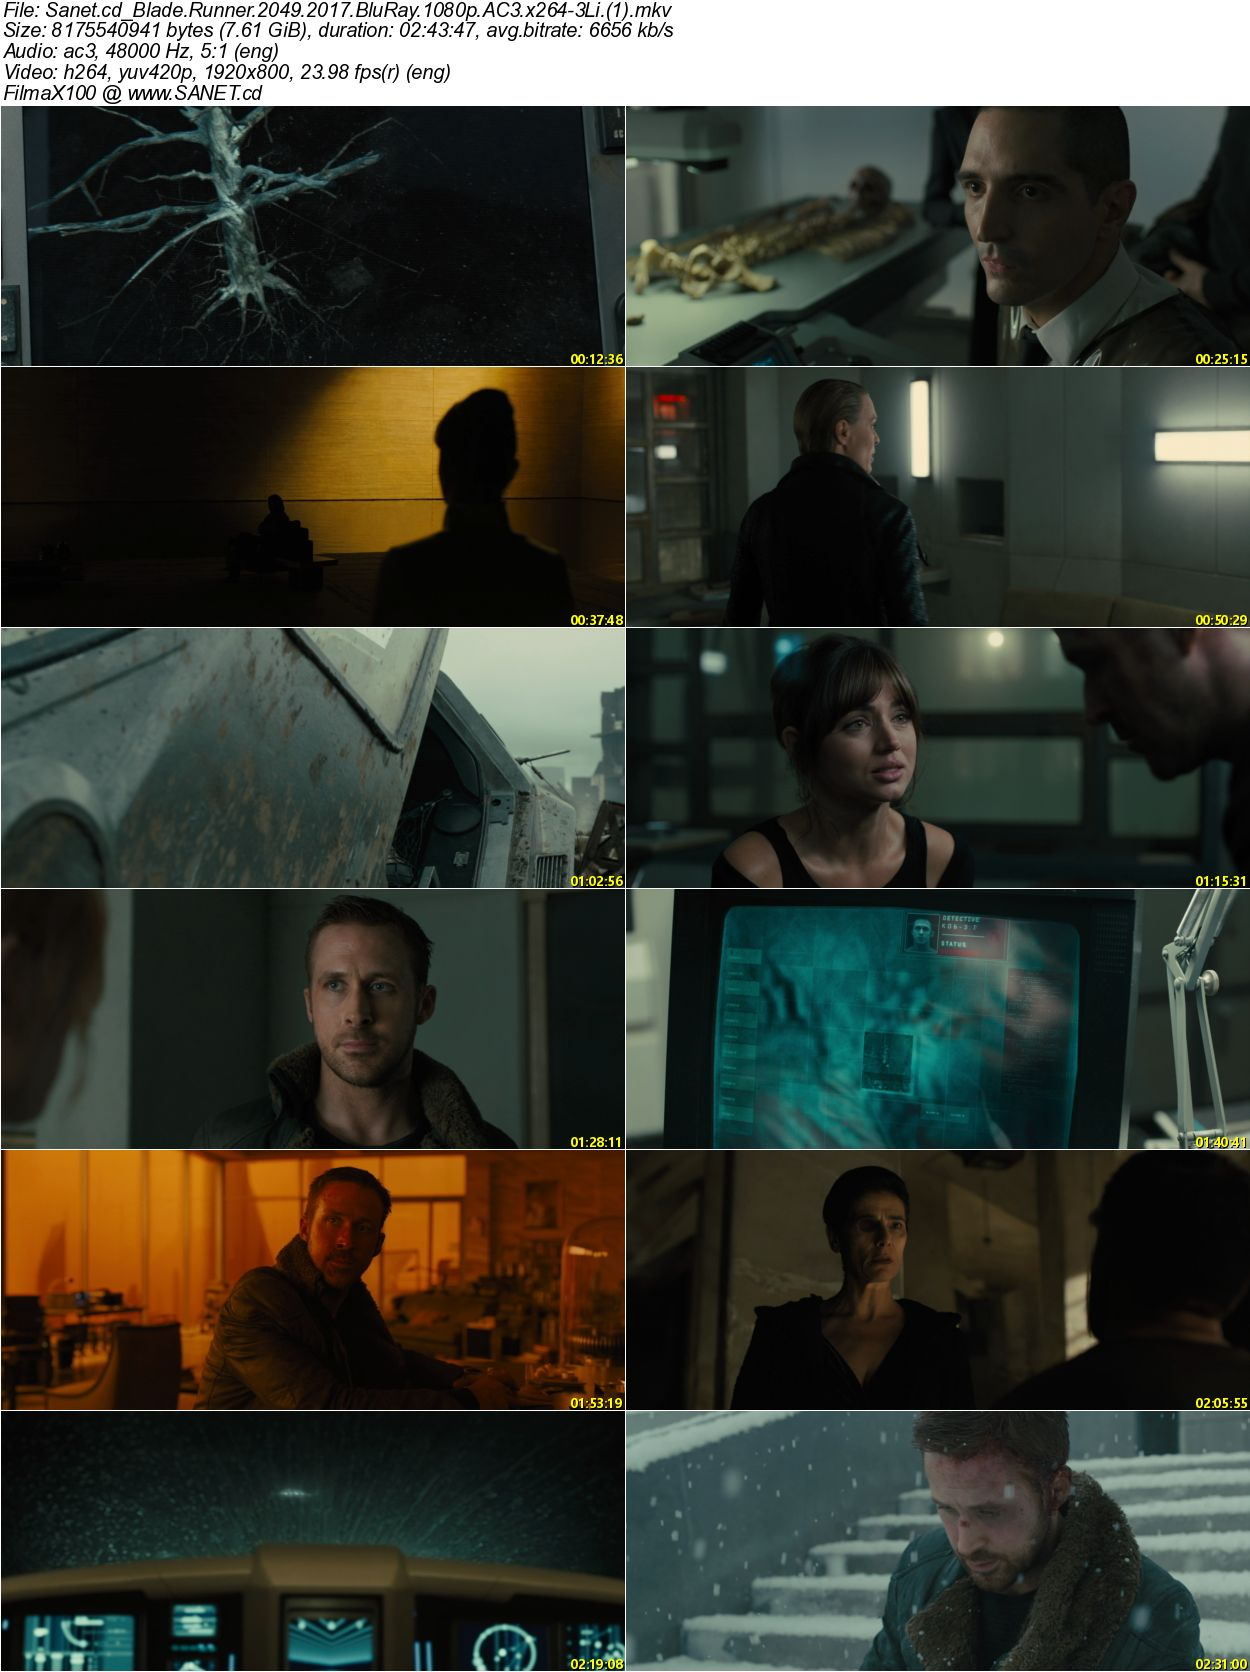 blade runner 2049 bluray 1080p download